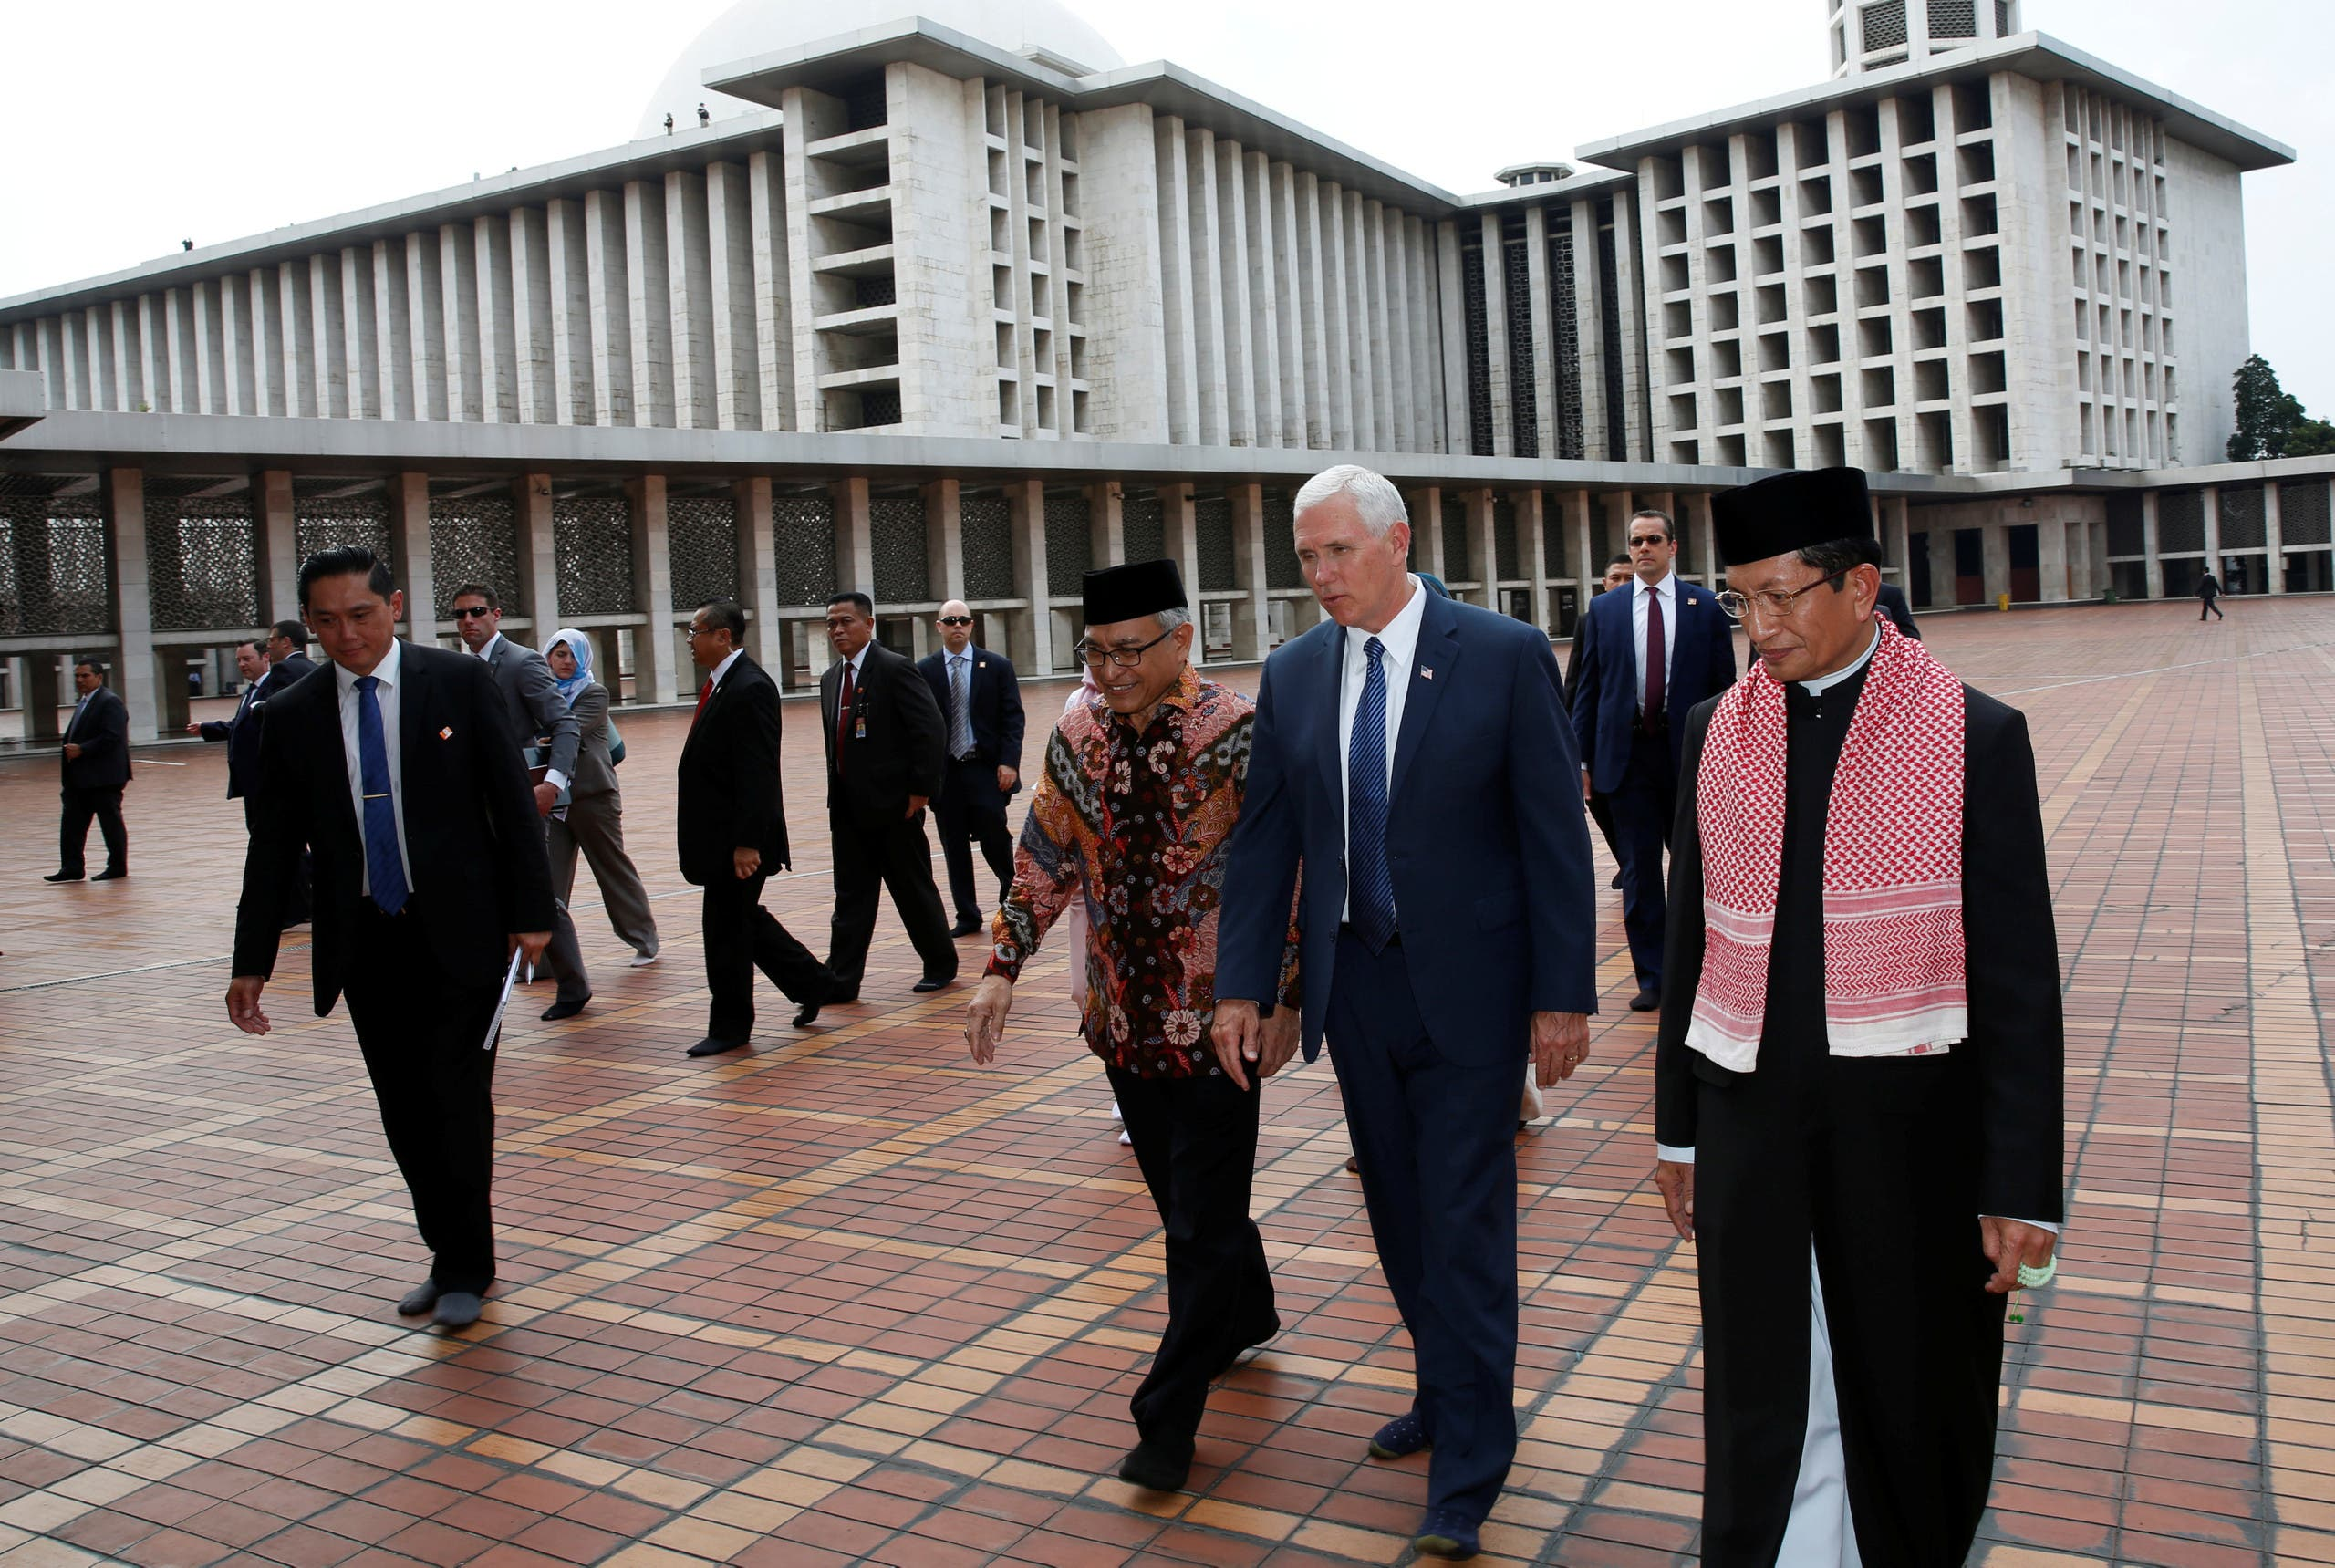 Chief Imam Nasaruddin Umar (left) and Chairman of the Istiqlal Mosque Management Executive Board, Muhammad Muzammil Basyuni (right) during his visit to the Istiqlal Mosque in Jakarta. (Reuters)